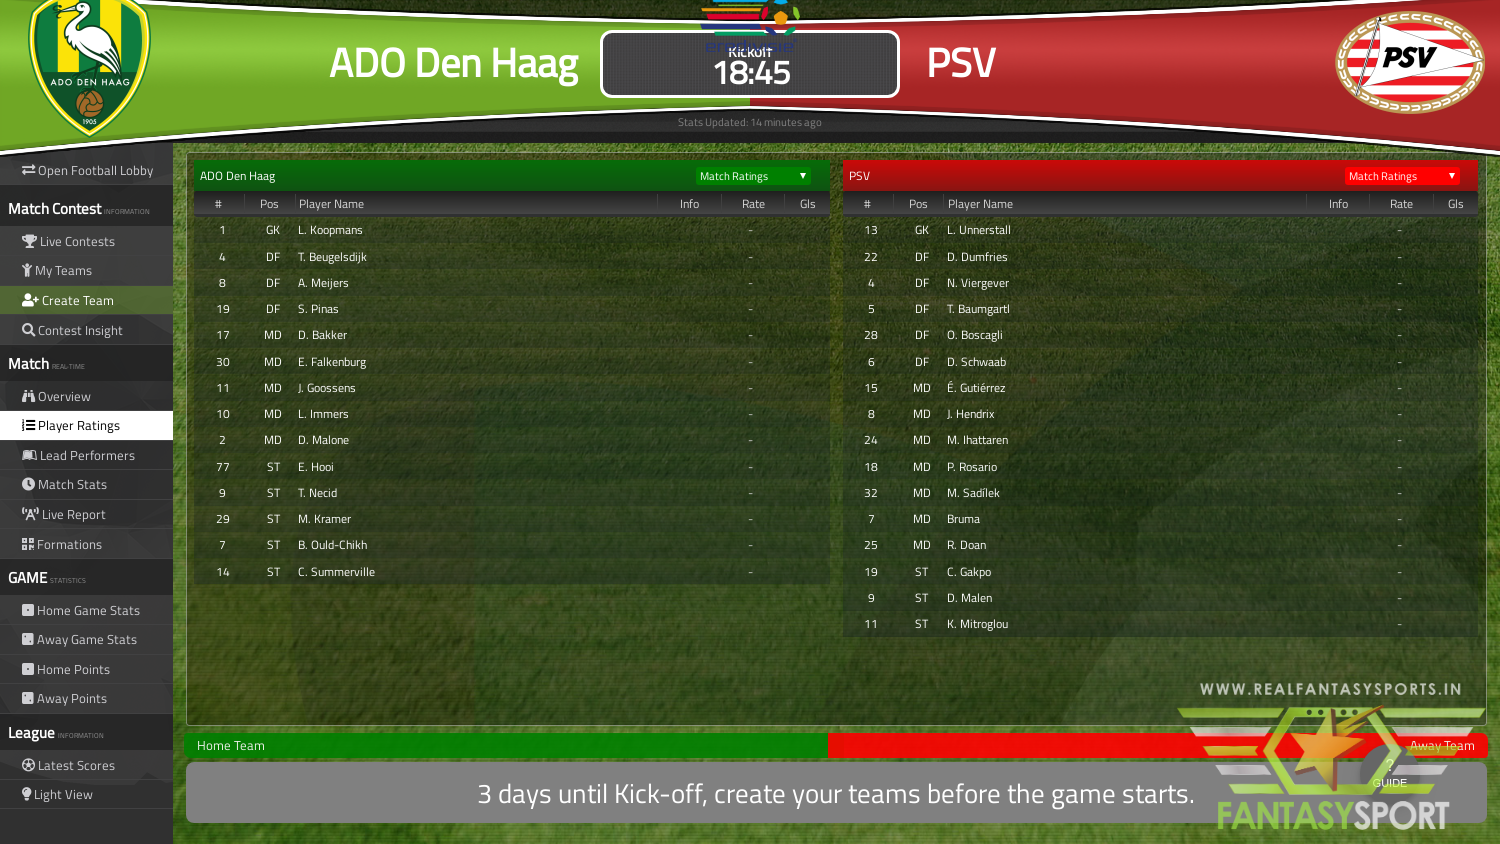 Fantasy Football Ado Den Haag Vs Psv